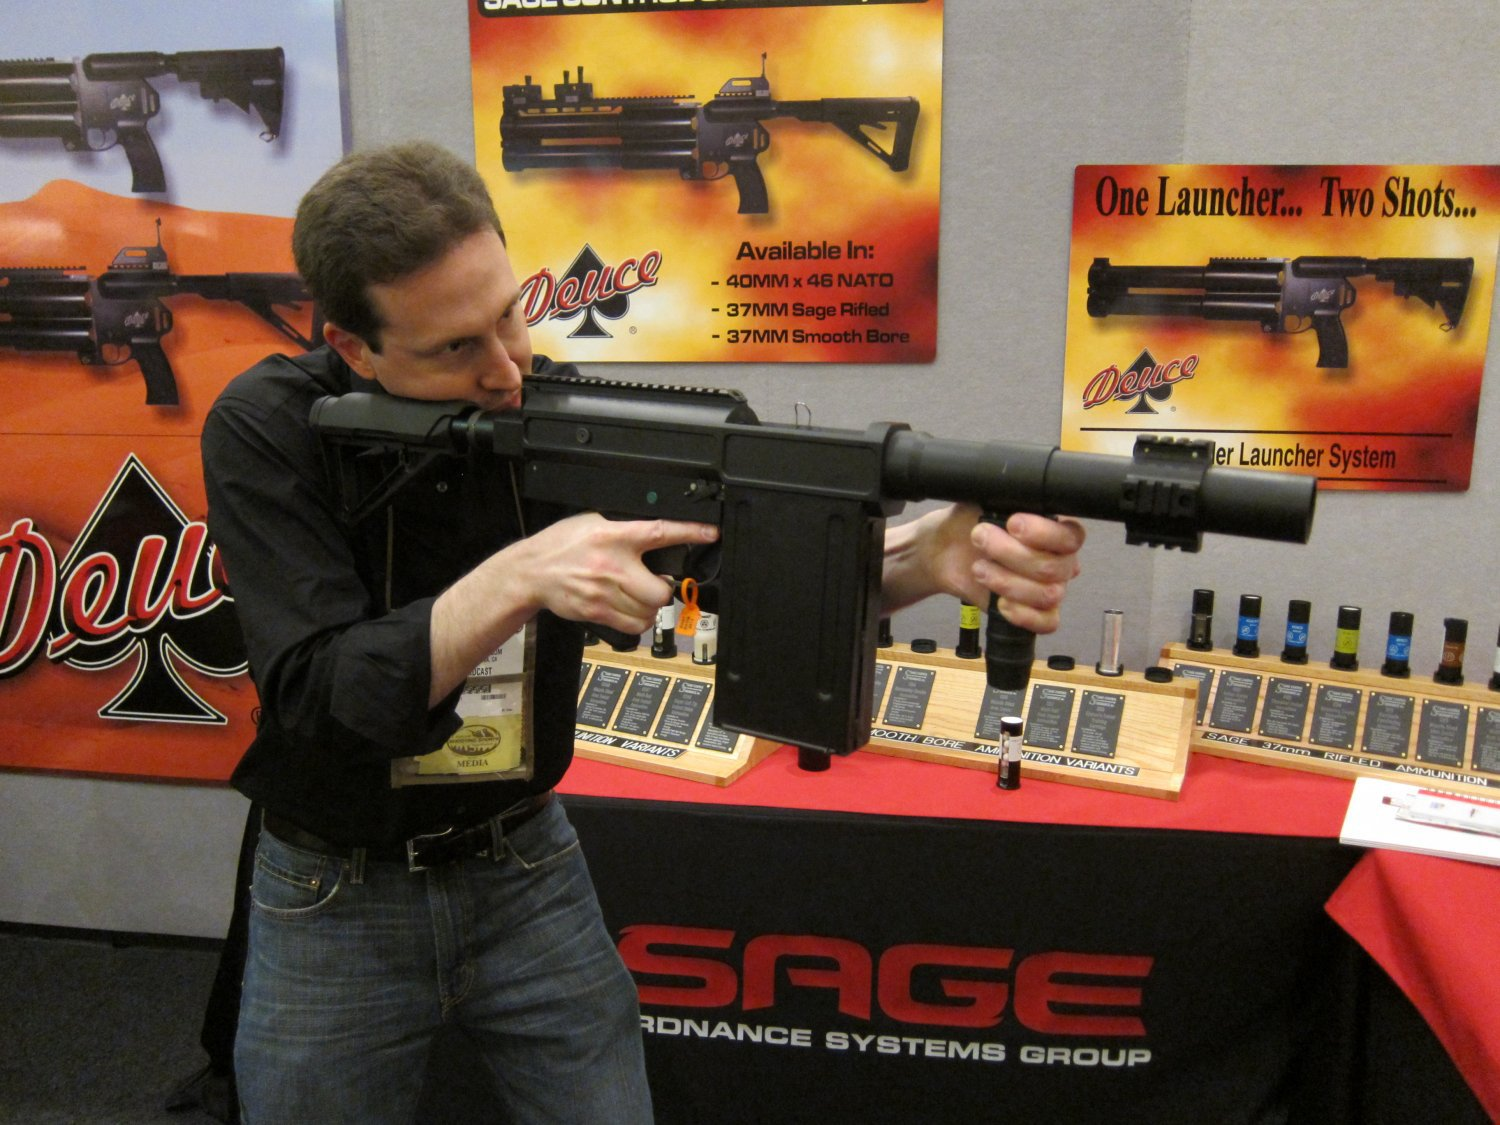 Sage Ordnance Systems Mag Fed Semi Auto 37mm Grenade Launcher David Crane SHOT Show 2011 1 <!  :en  >Sage Ordnance Systems Deuce Over/Under Dual 40mm (40x46mm NATO)/37mm Sage Rifled/37mm Smooth Bore Grenade Launcher and Prototype Mag Fed Semi Auto 37mm Grenade Launcher <!  :  >